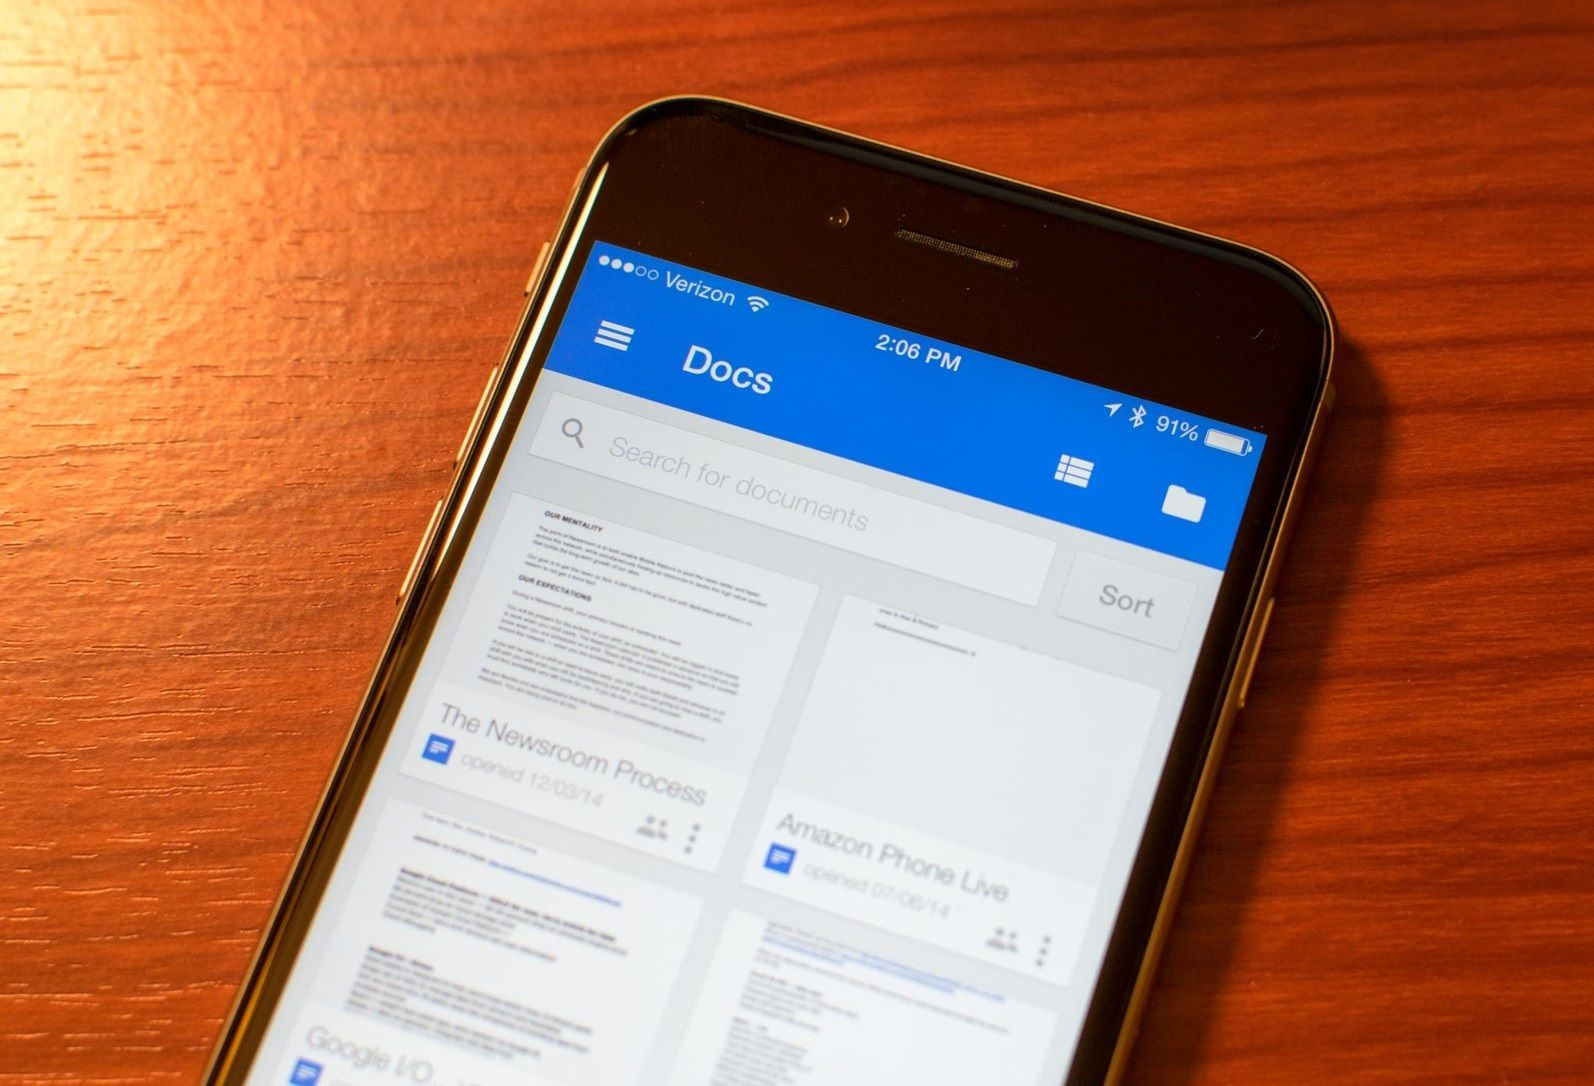 Both Google Docs and Google sheets apps got updated to iOS